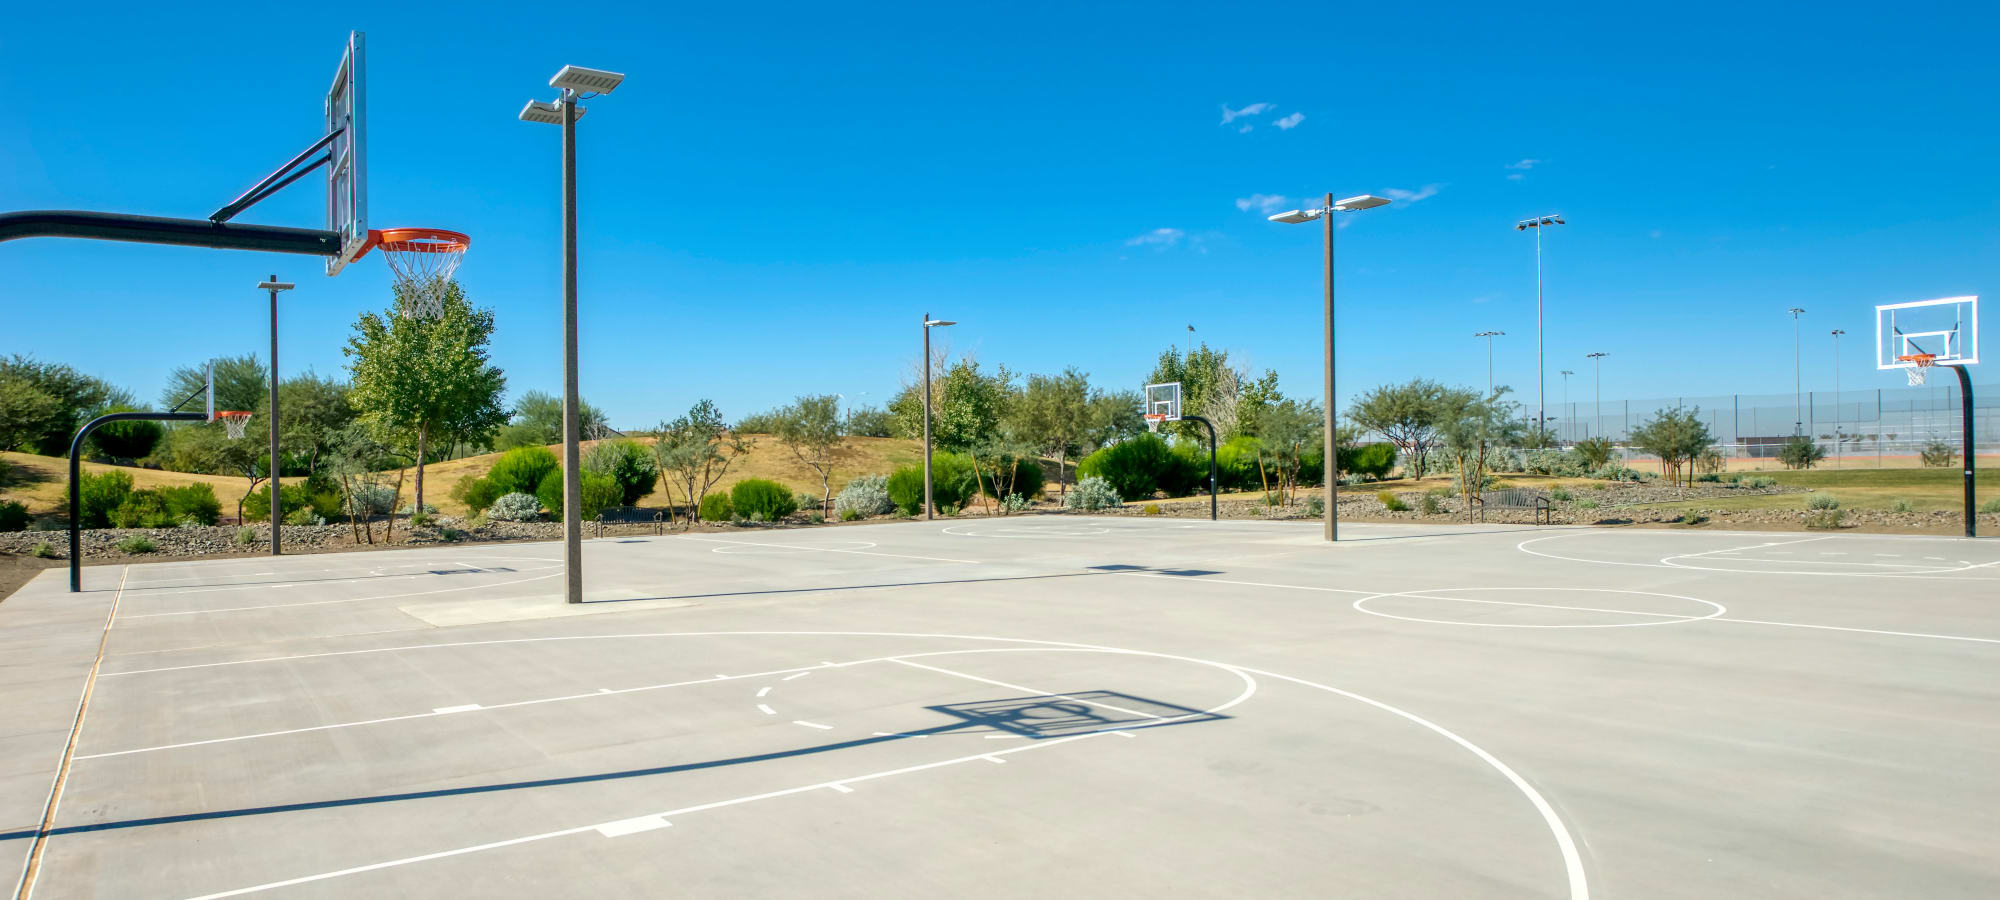 Basketball court available at BB Living at Eastmark in Mesa, Arizona